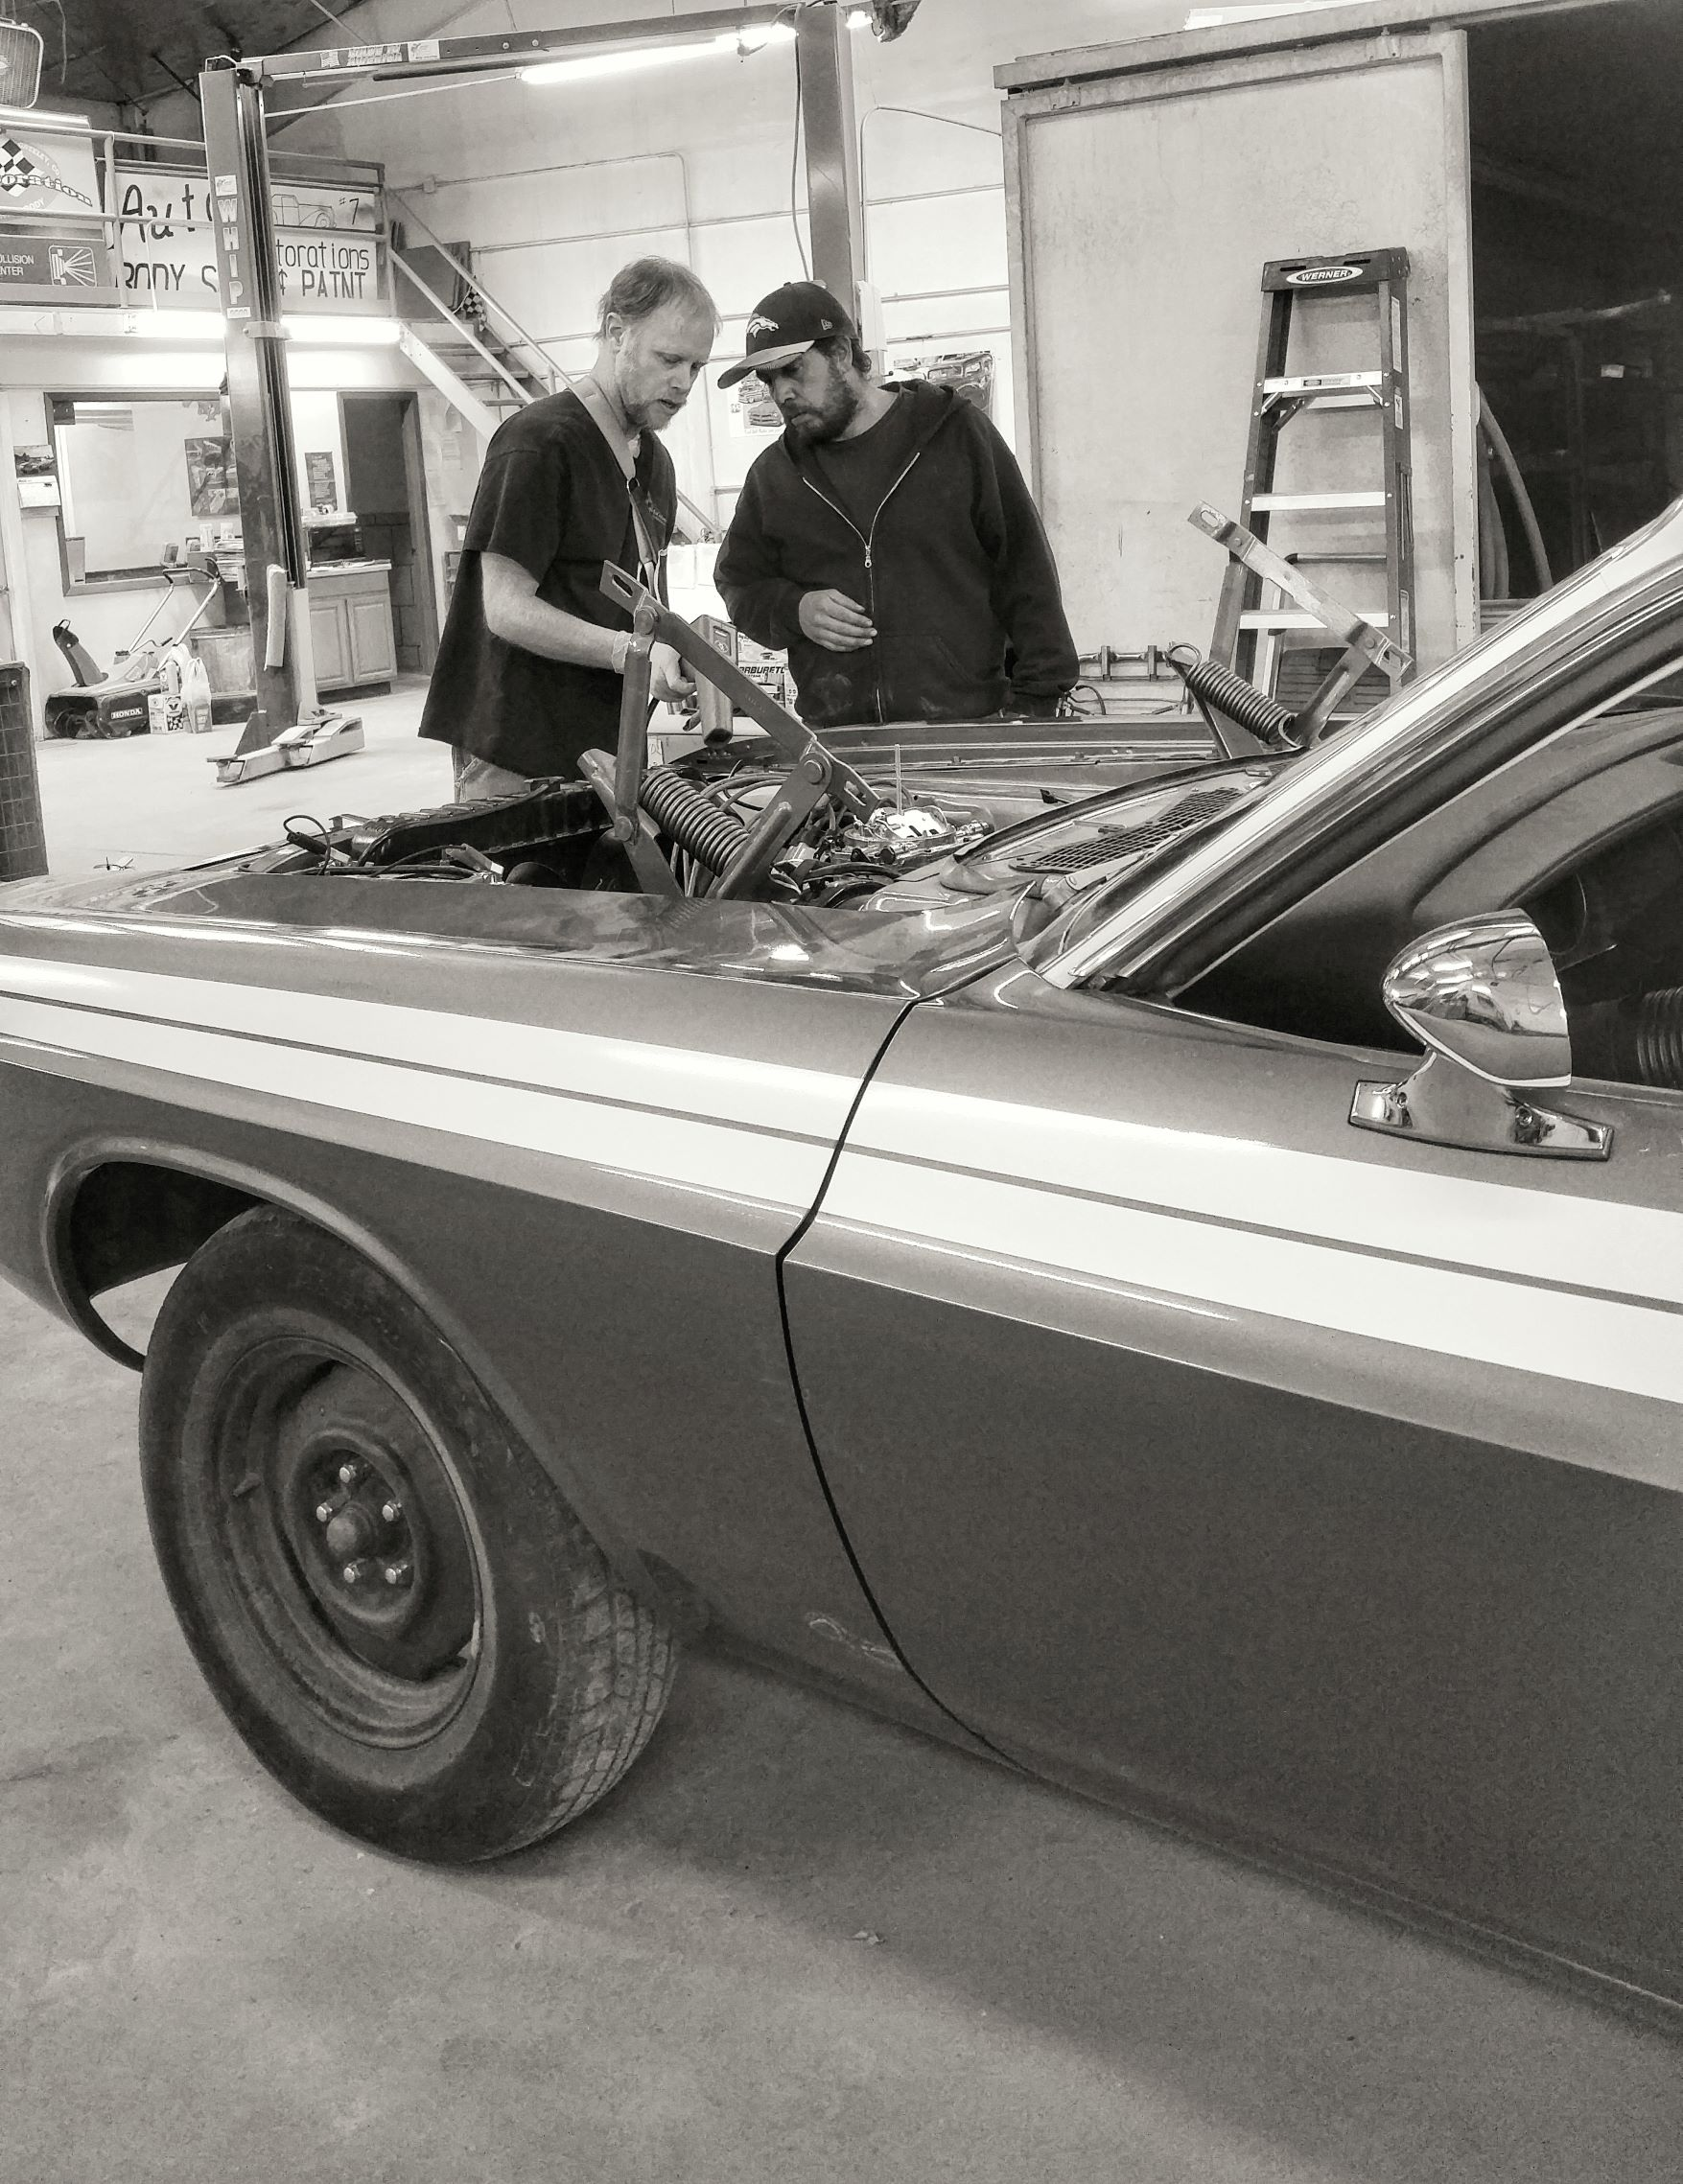 of our staff members working on a classic car restoration.